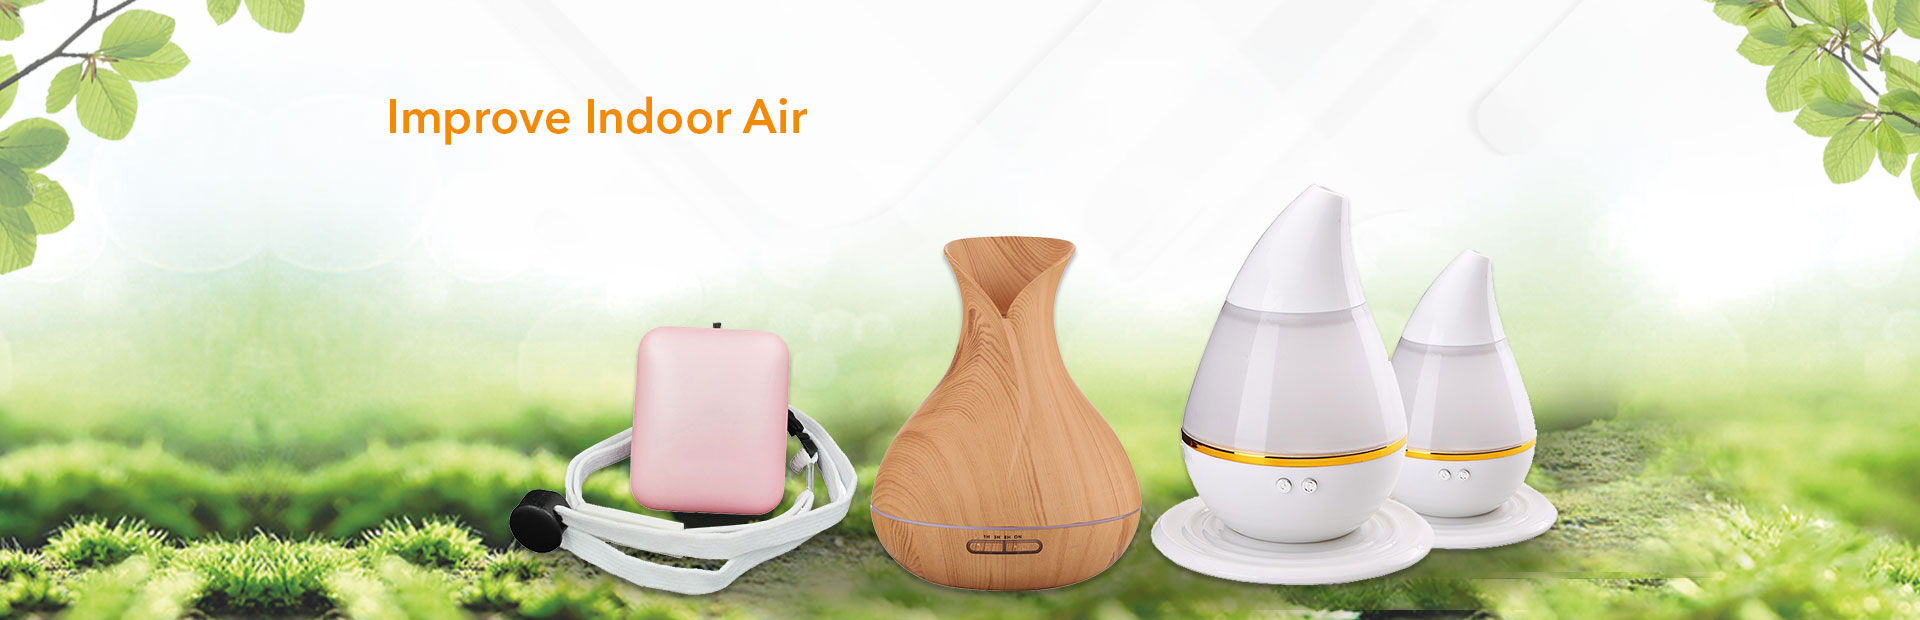 Inprove Indoor Air